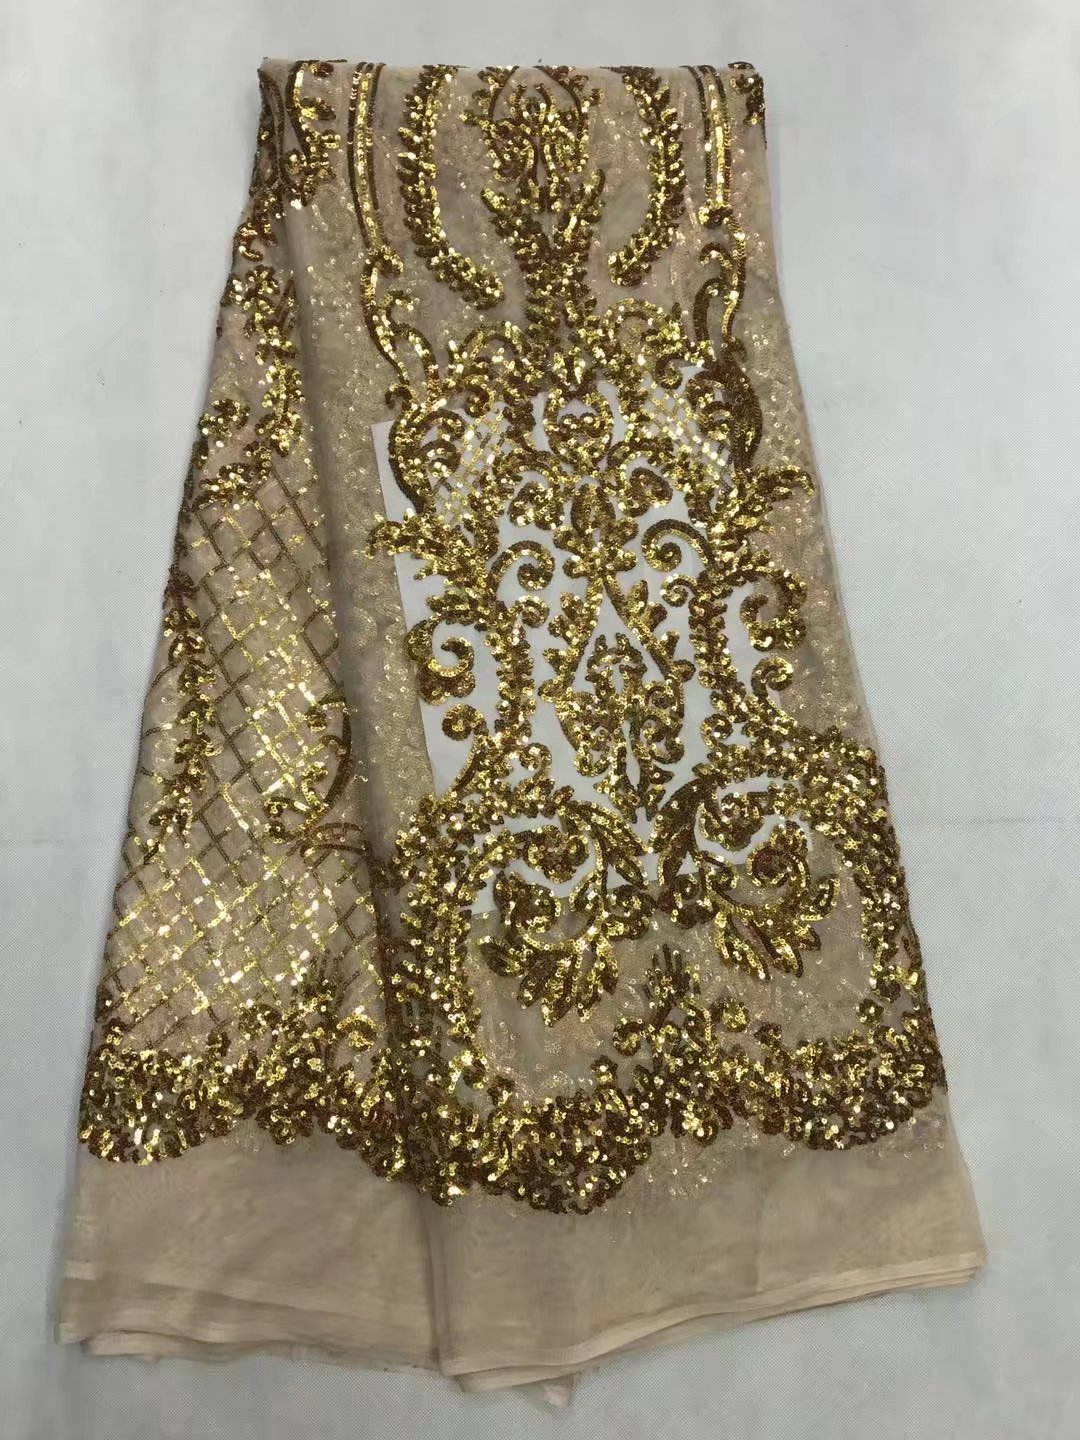 2017 Unique Design African Guipure Lace Fabric With Sequins High Quality Cord Lace Fabirc Sequin Lace Fabric For Wedding Dress